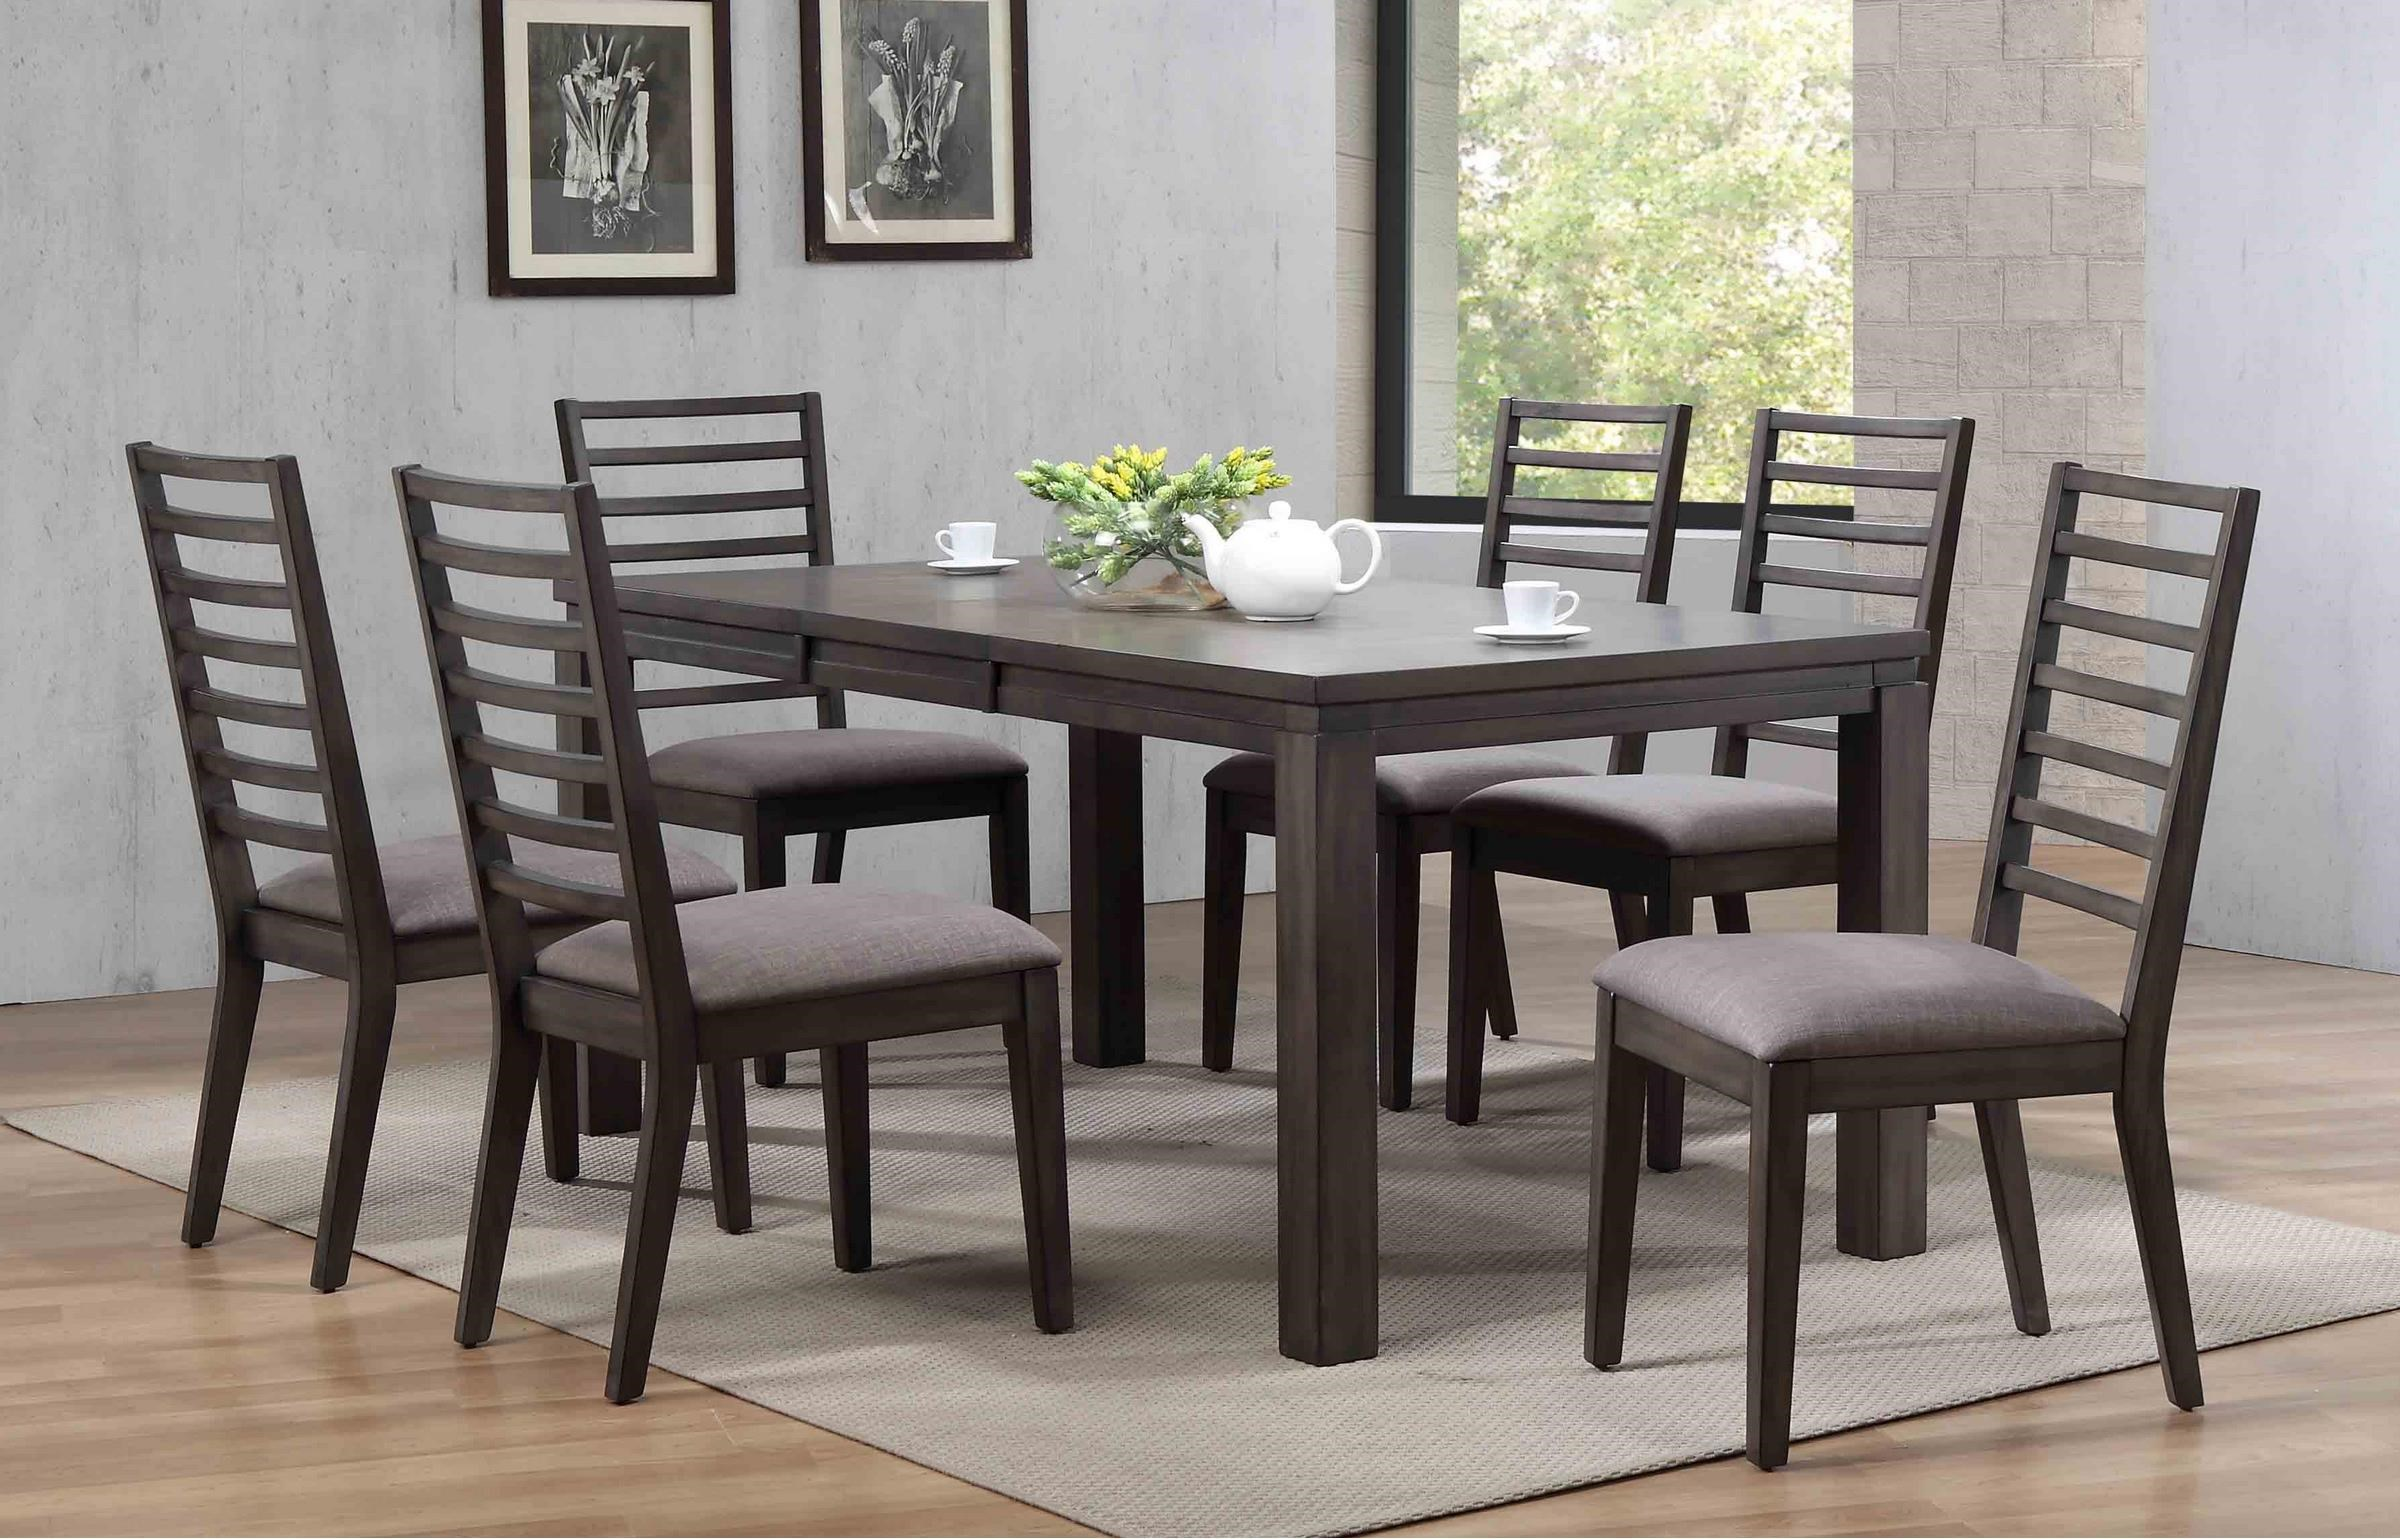 Lancaster 7 Pc. Dining Set at Bennett's Furniture and Mattresses